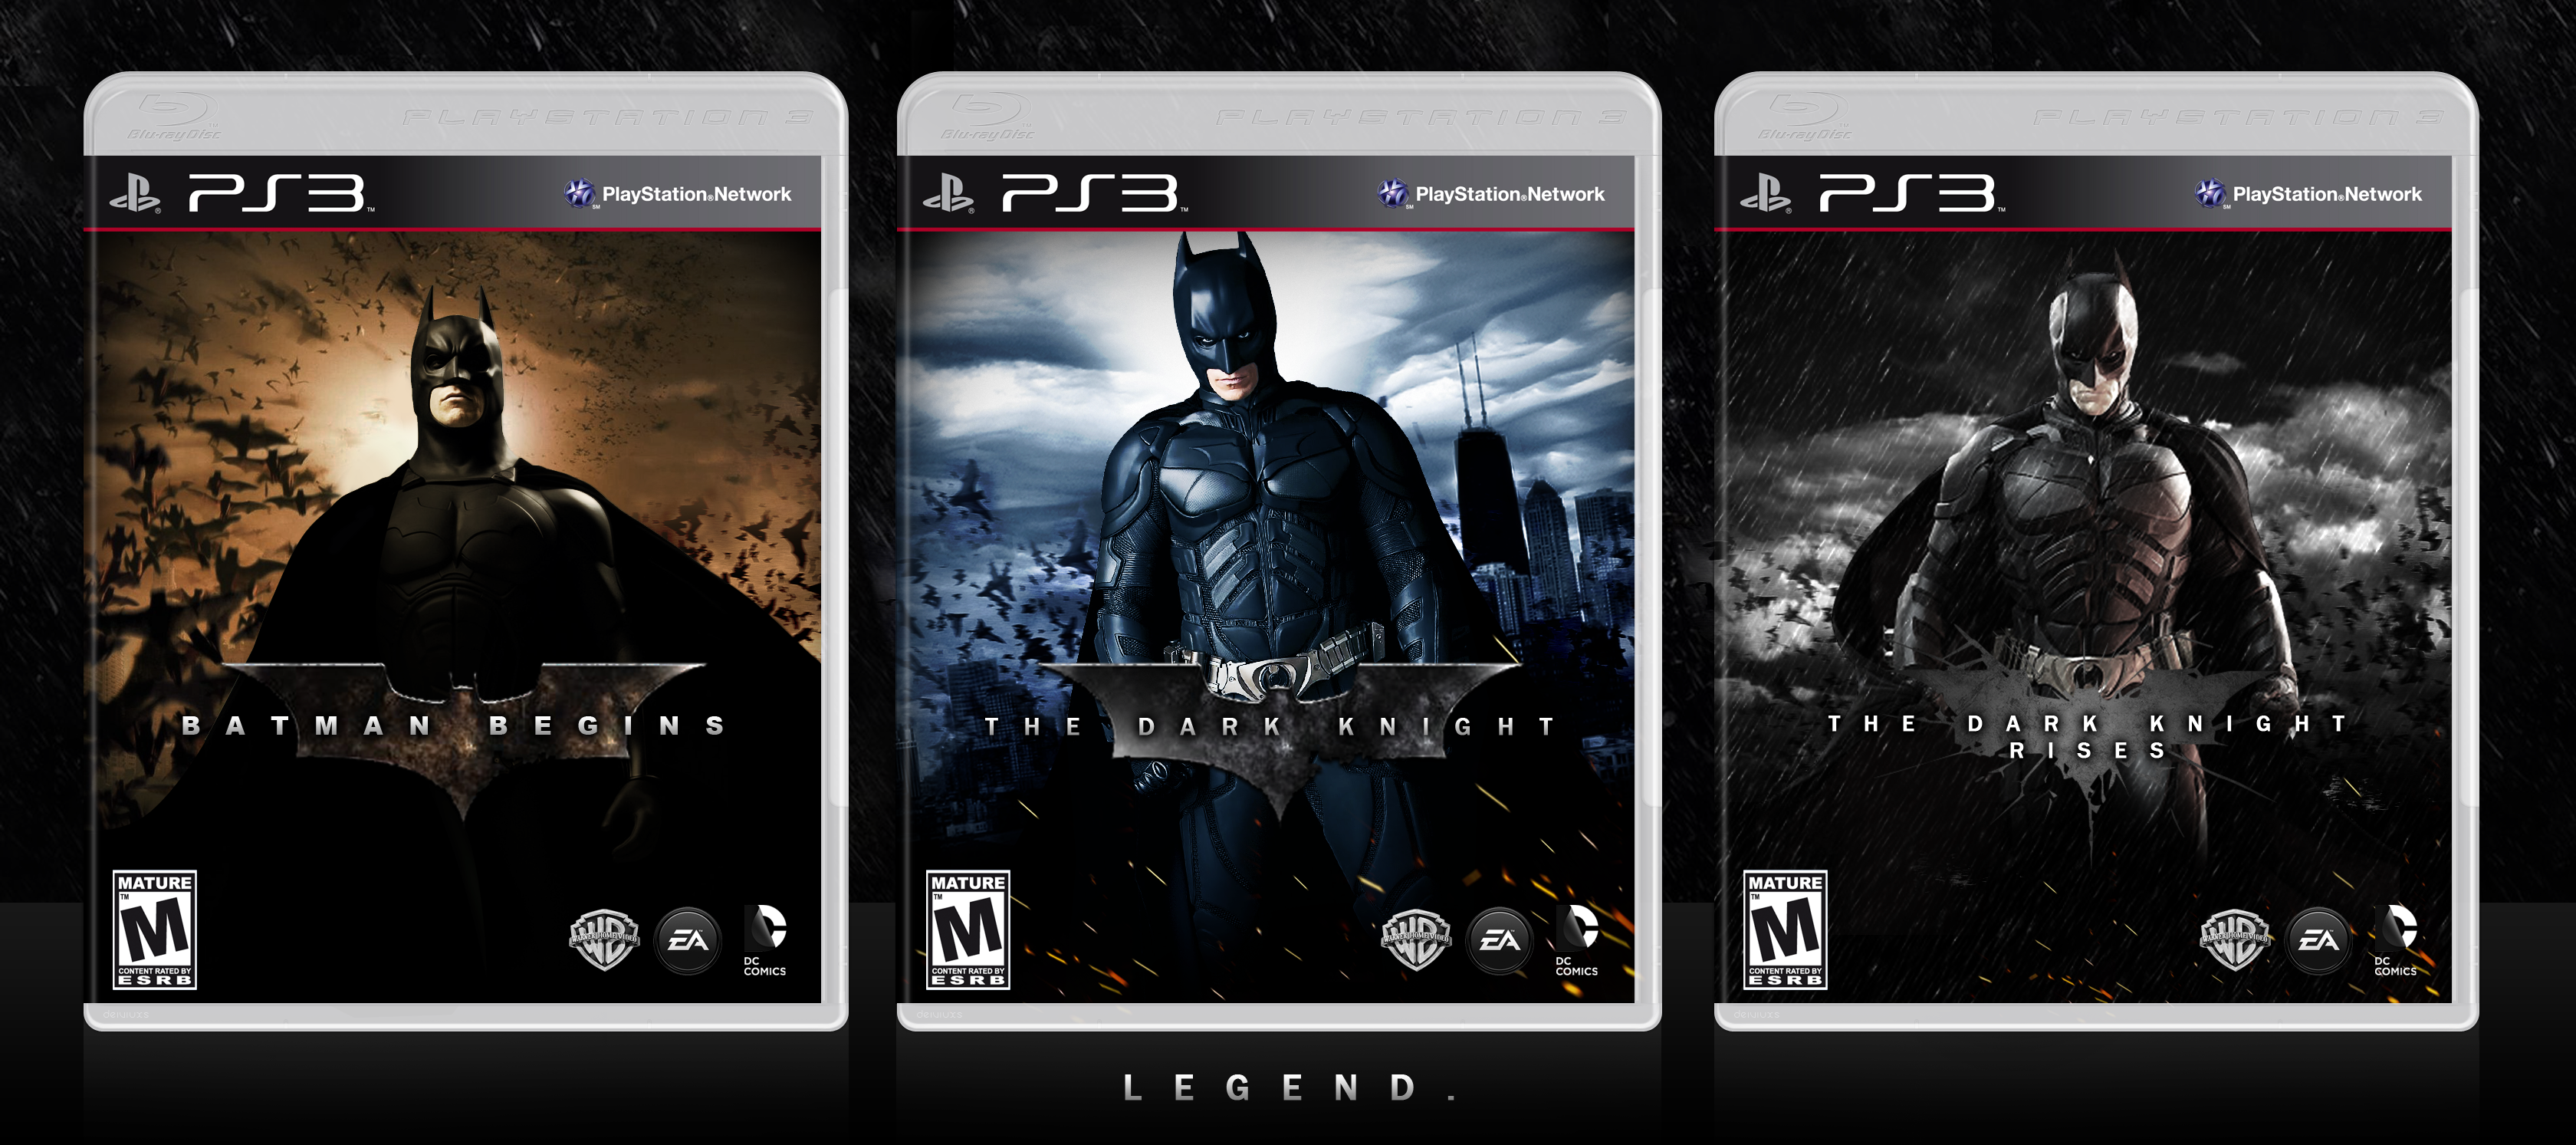 The Dark Knight Trilogy box cover